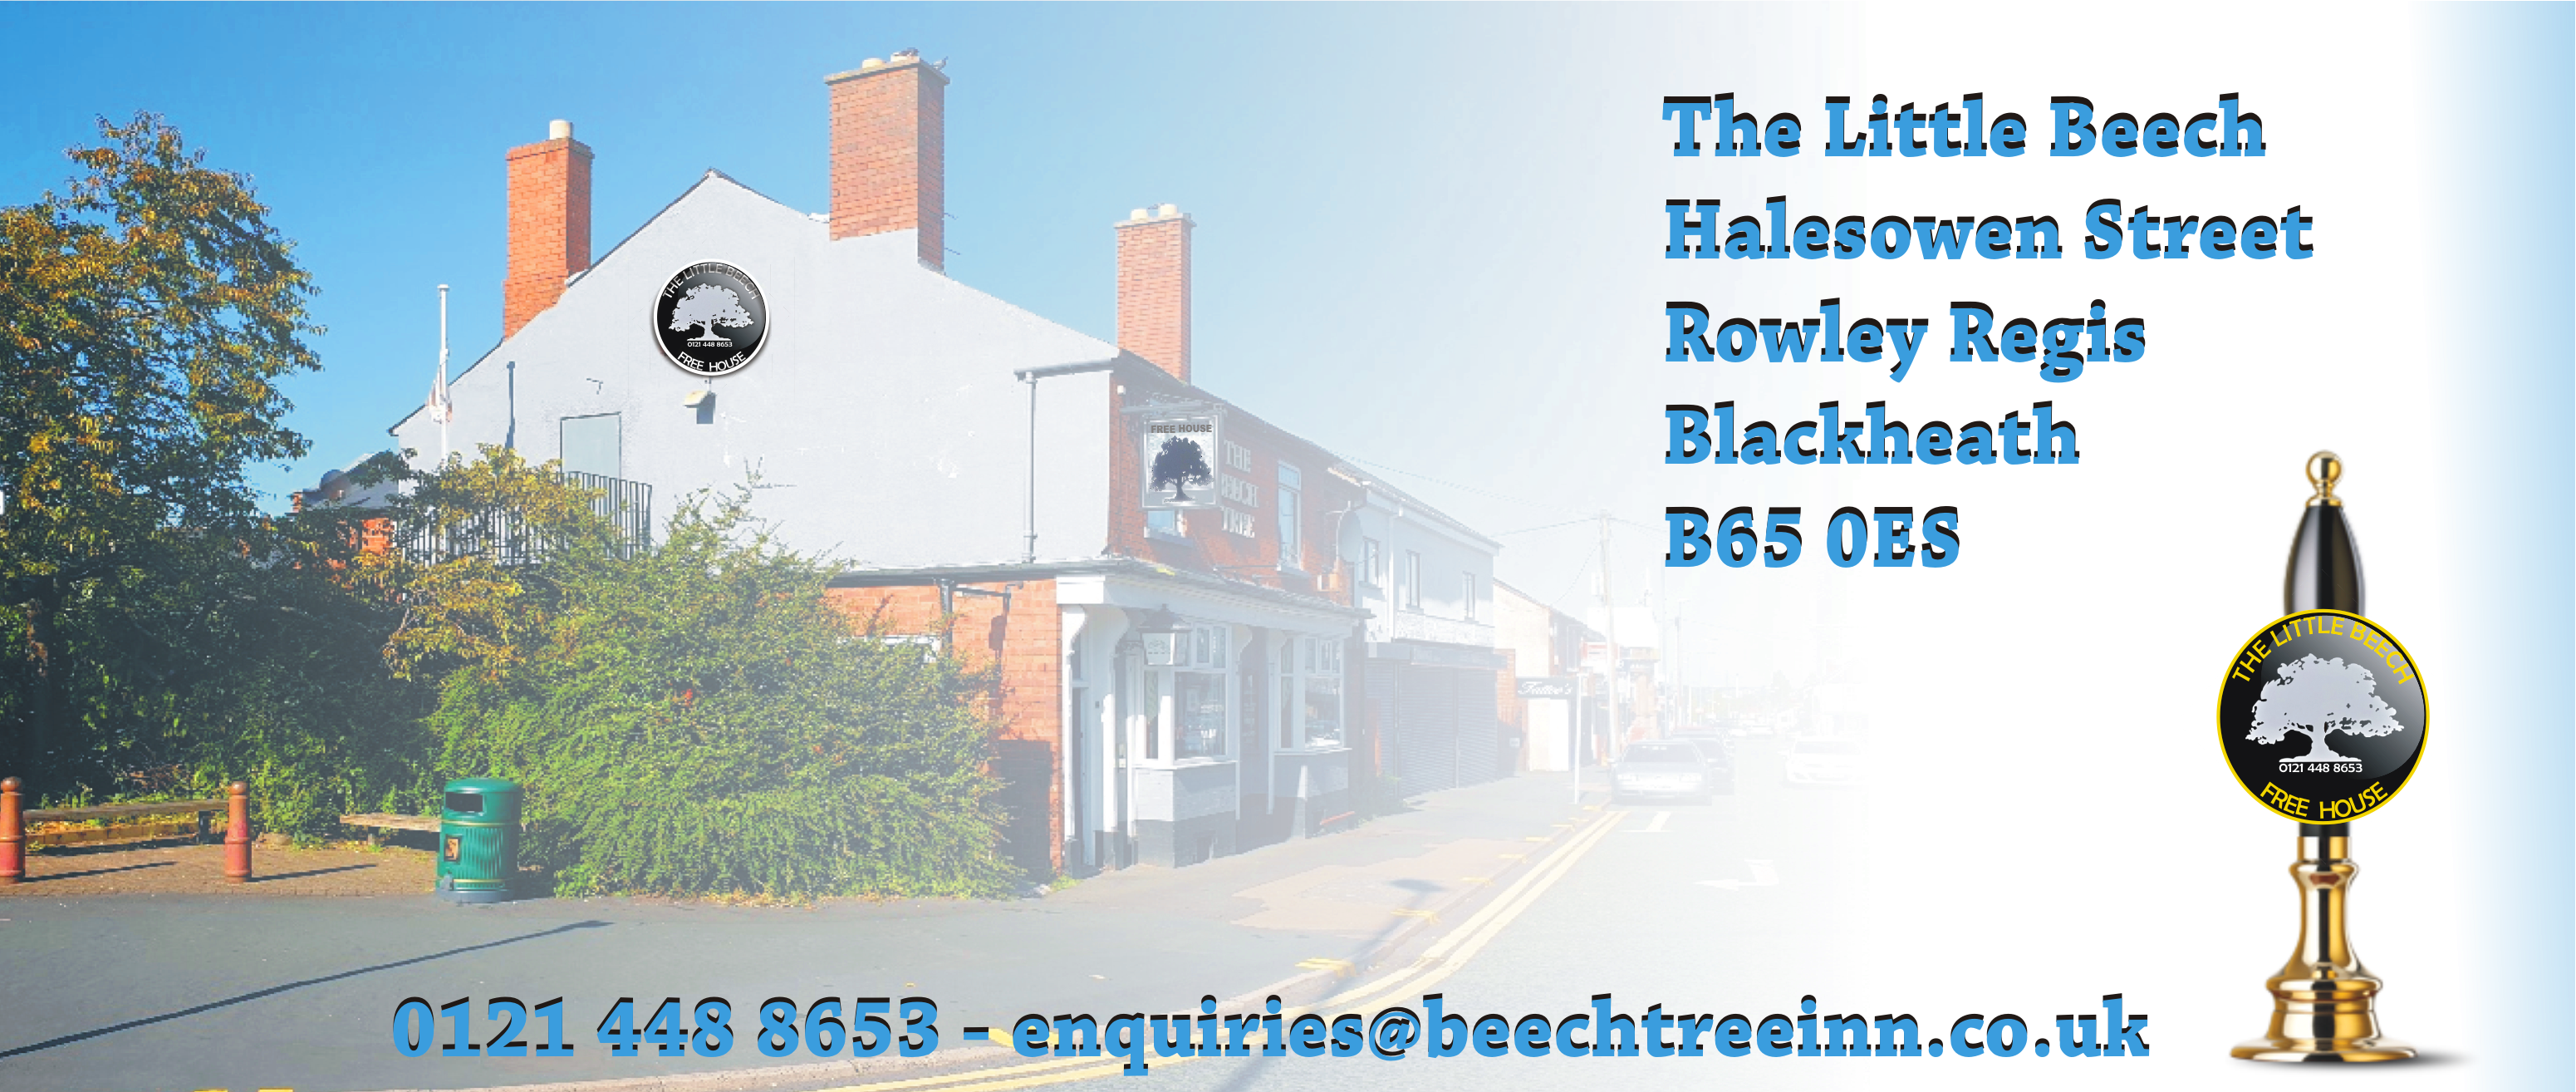 The-Little-Beech-Halesowen-Road-Blackheath